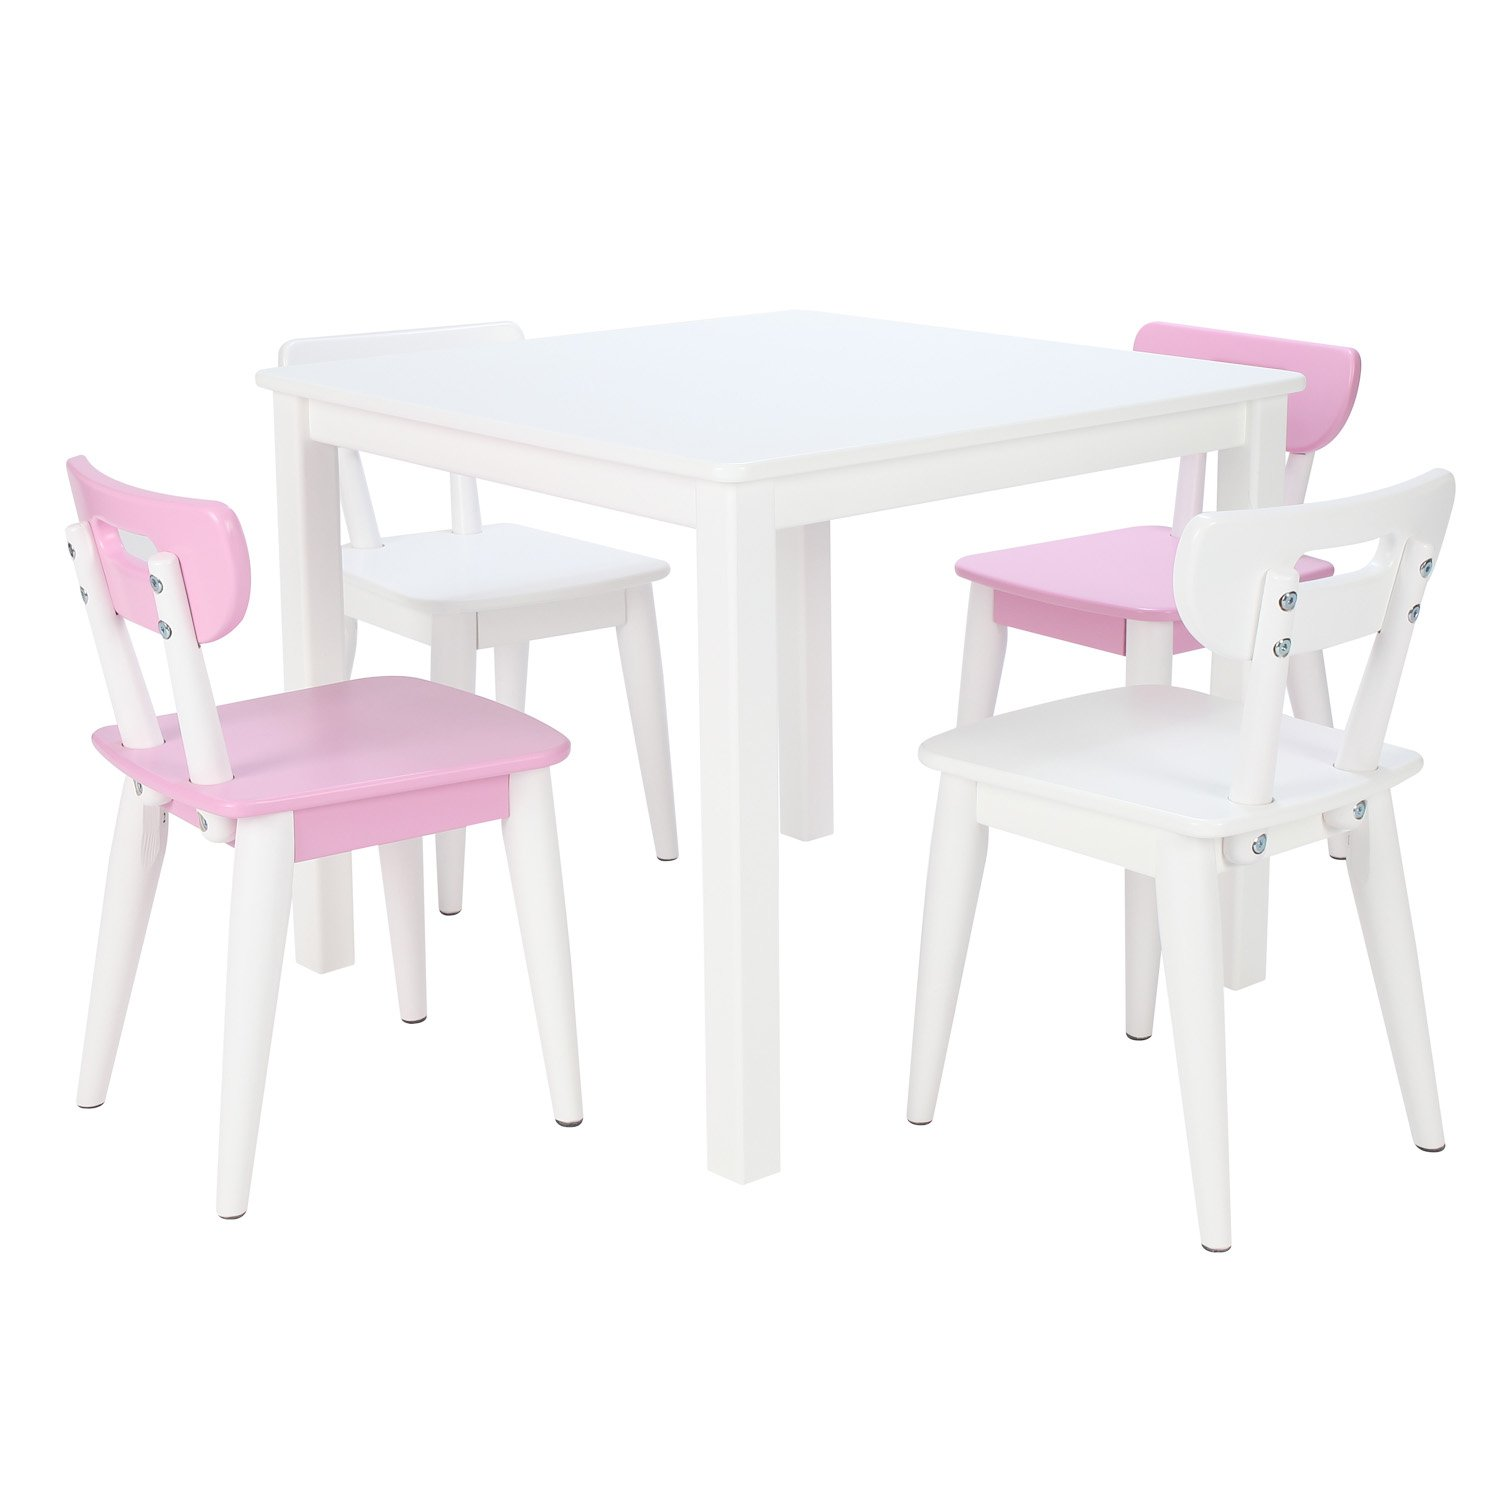 Max & Lily White Wood Kid and Toddler Square Table +  Modern Chairs (Pink, Pink, White, White)